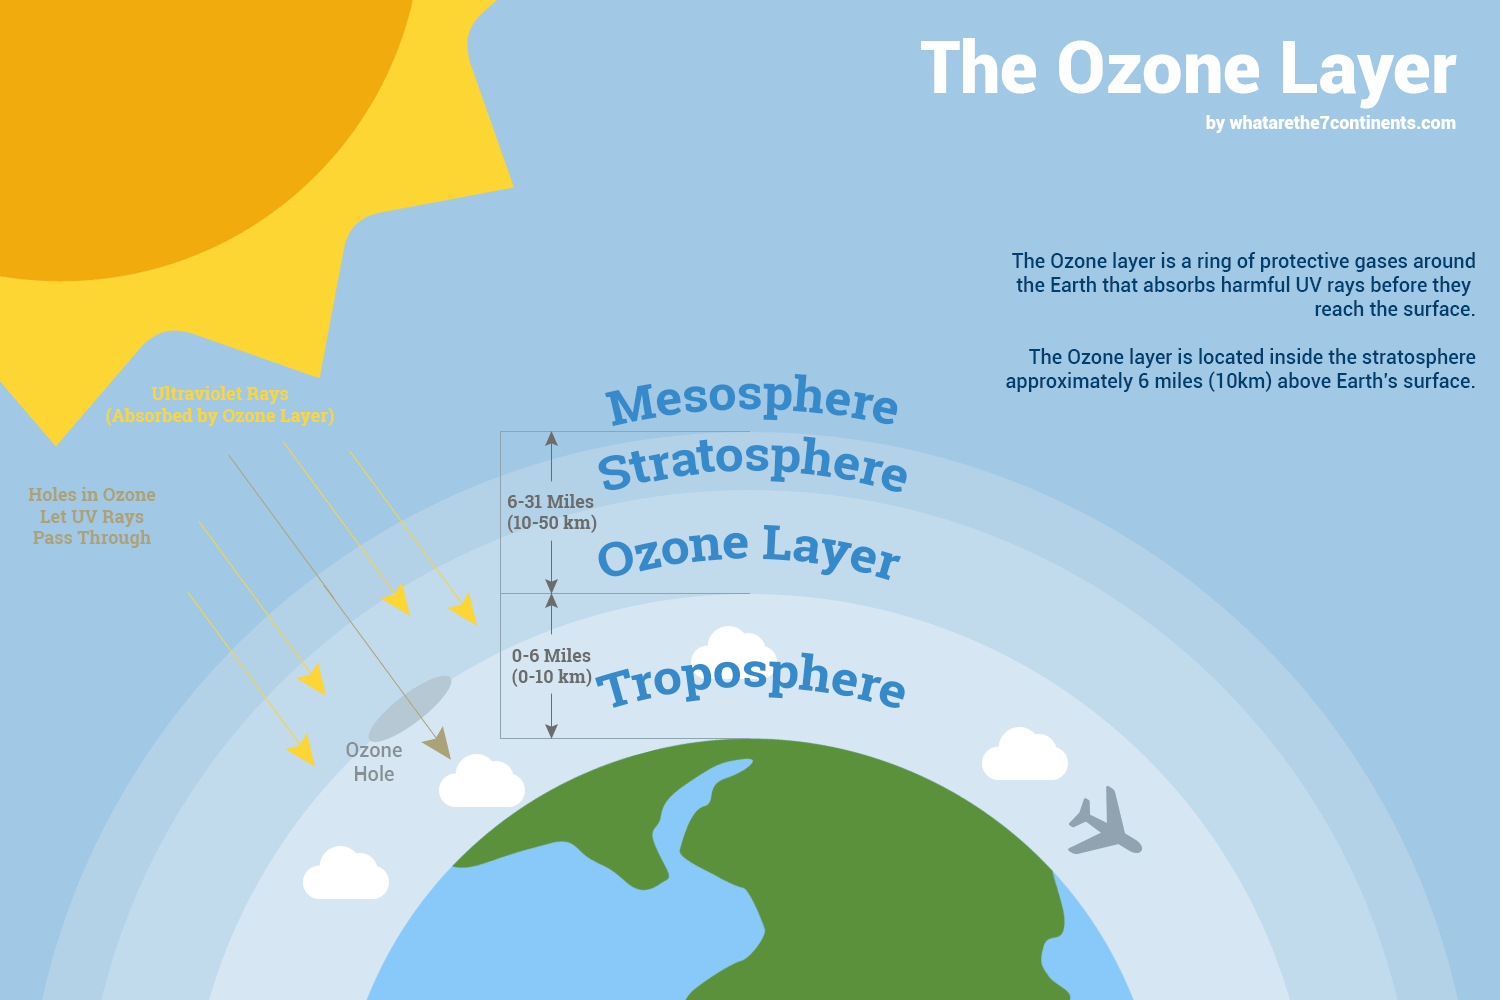 A diagram shows the Earth, sun and the layers of the upper atmosphere, above the clouds: troposphere, ozone layer, stratosphere, mesosphere.